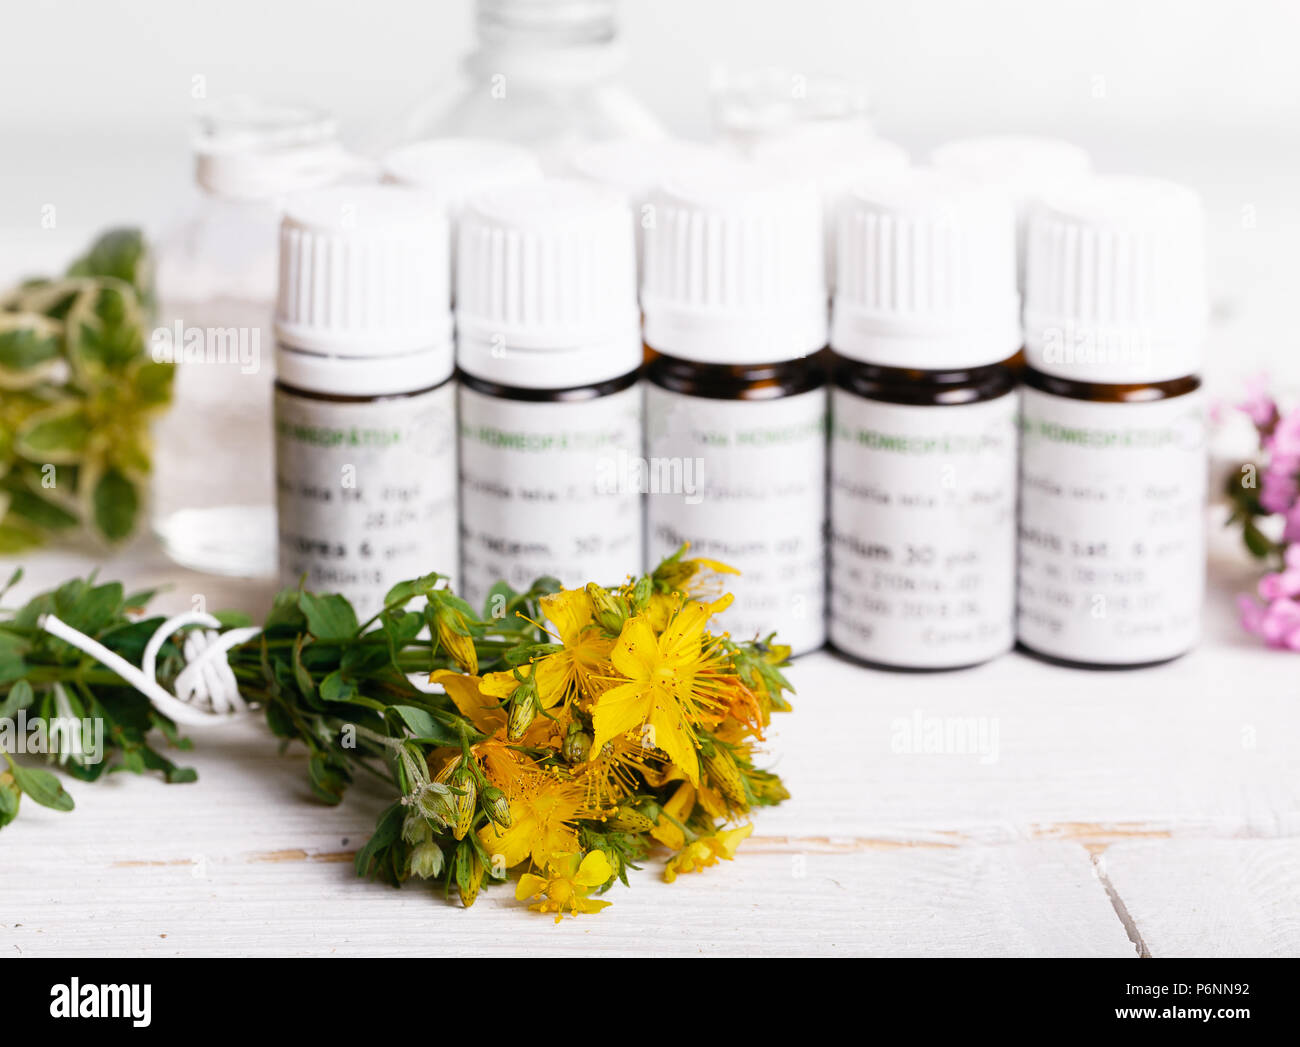 Homeopathy - A homeopathy concept with homeopathic medicine - Stock Image